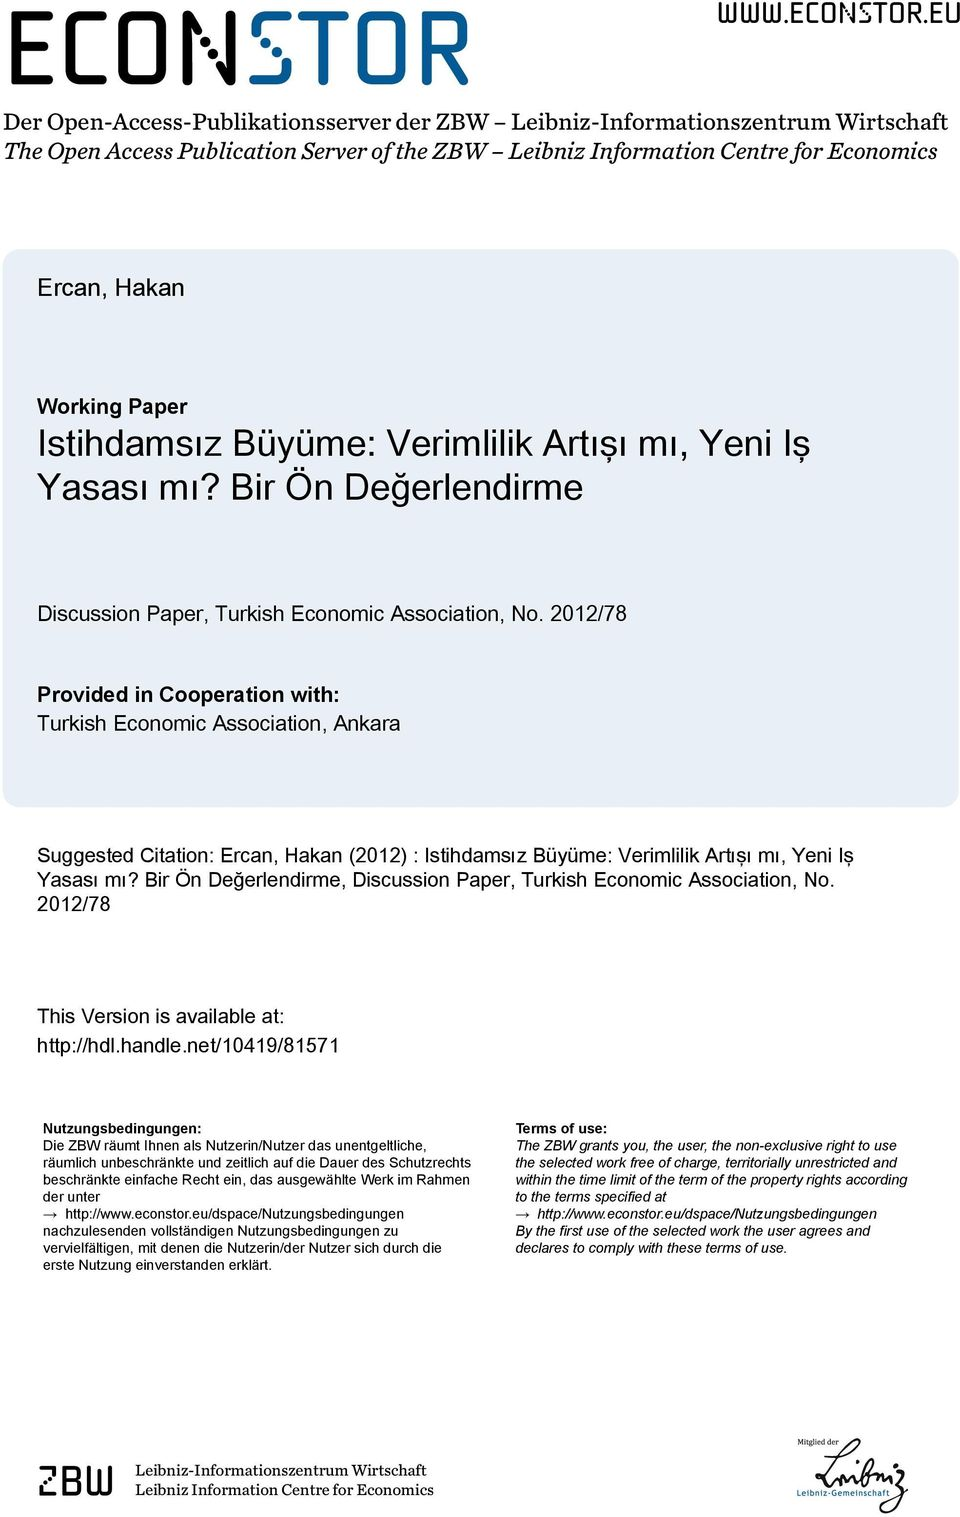 eu Der Open-Access-Publikationsserver der ZBW Leibniz-Informationszentrum Wirtschaft The Open Access Publication Server of the ZBW Leibniz Information Centre for Economics Ercan, Hakan Working Paper